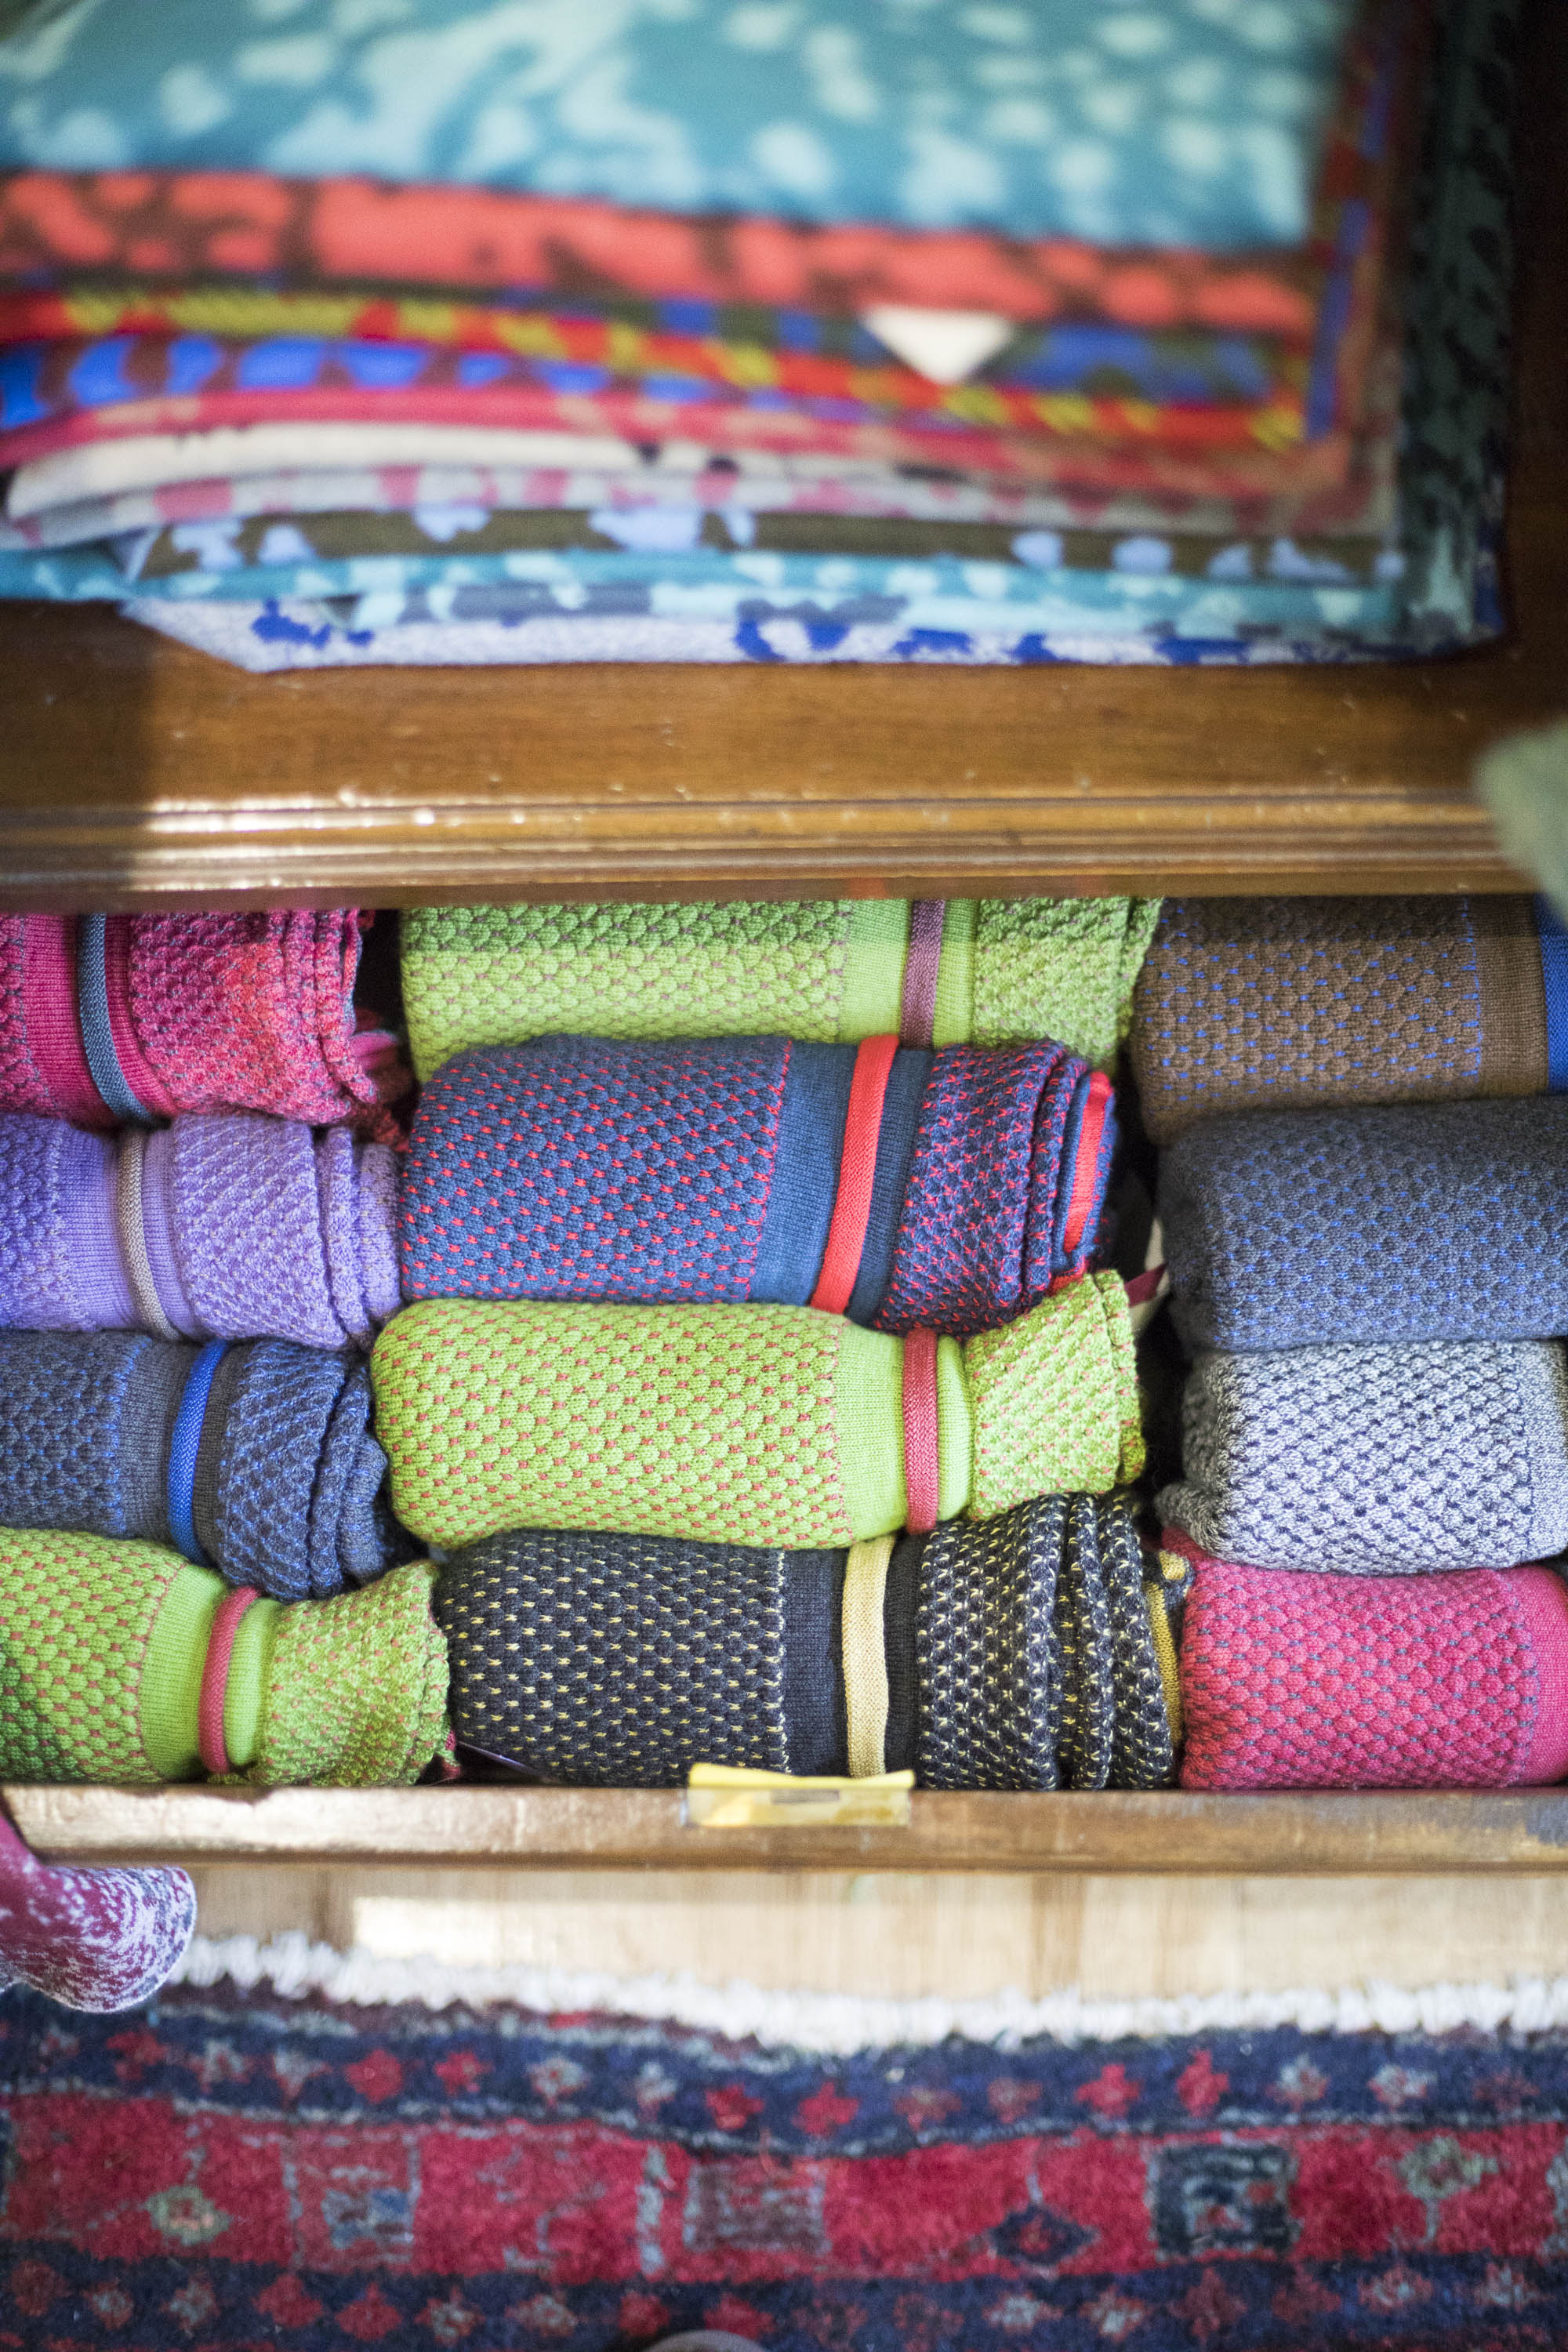 Interesting use of colour in knitwear at the Nielanell studio, Hoswick, Shetland. Contemporary, luxury Scottish knitwear.